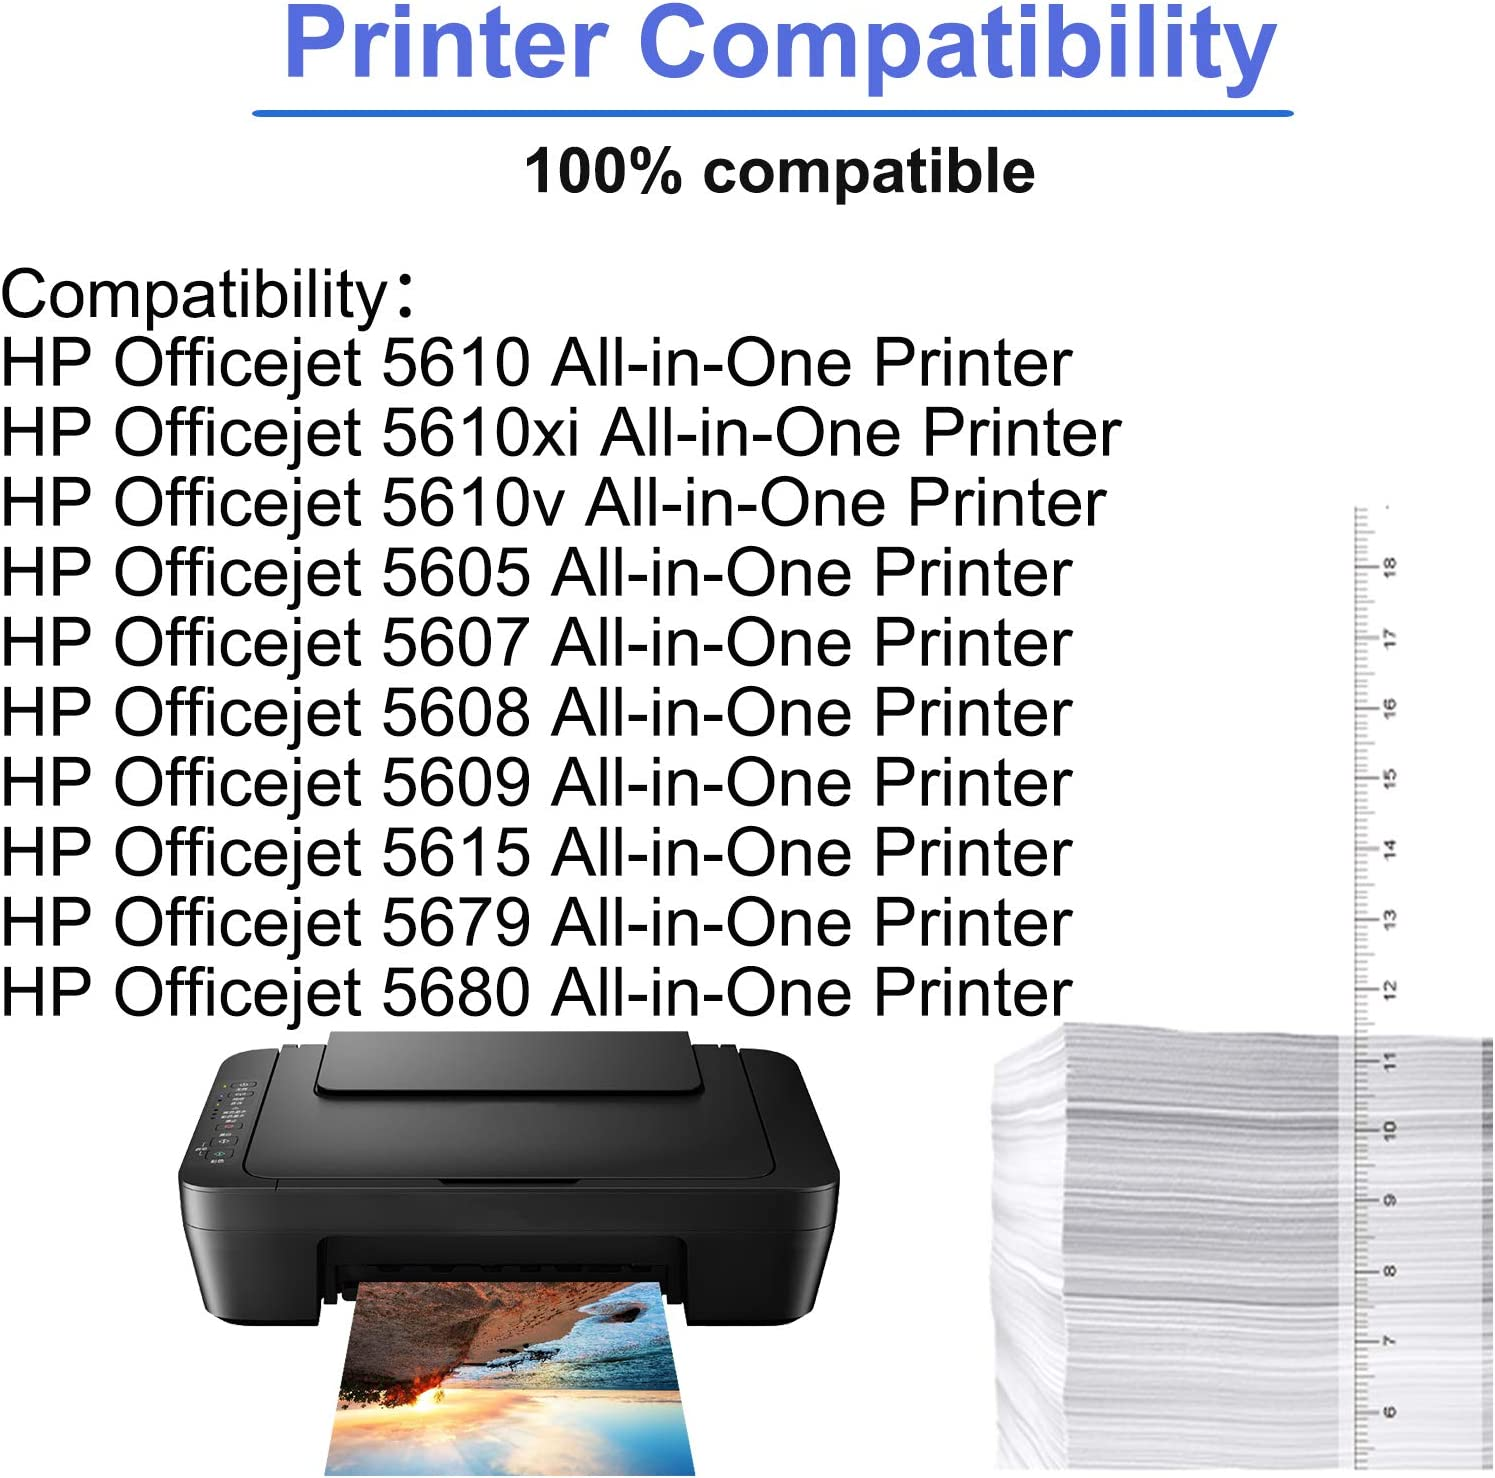 3 Black,2 Tri-Color Replacement Officejet 5605 5607 5608 5609 5610 5615 5679 5680 All-in-One Printer SuperInk 5 Pack Remanufactured Ink Cartridge Compatible for HP C6656AN C9352CE 56 22 22XL